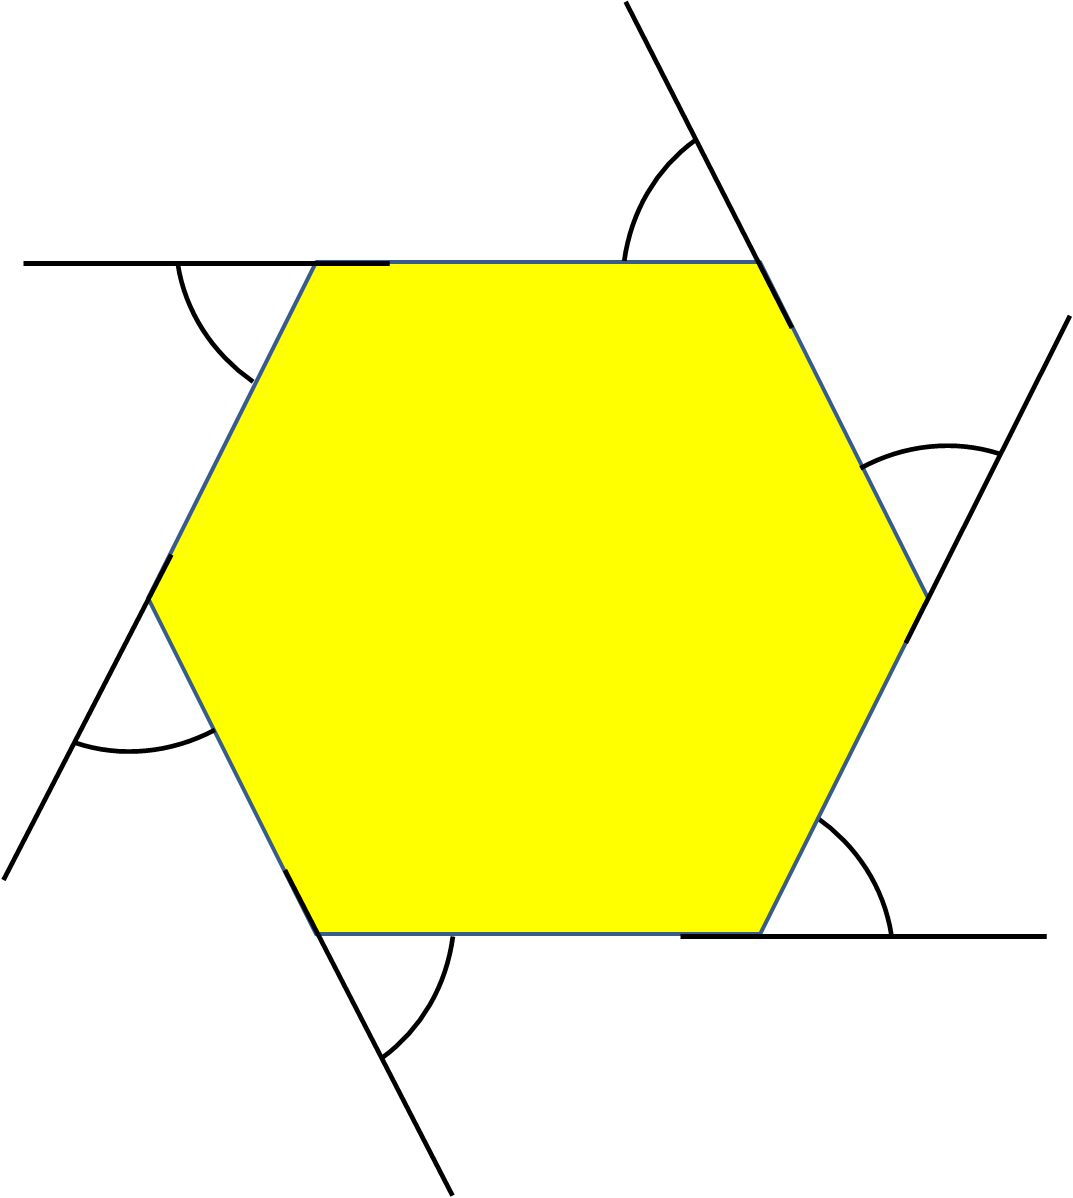 Exterior Angles Of Regular Polygons Worksheet